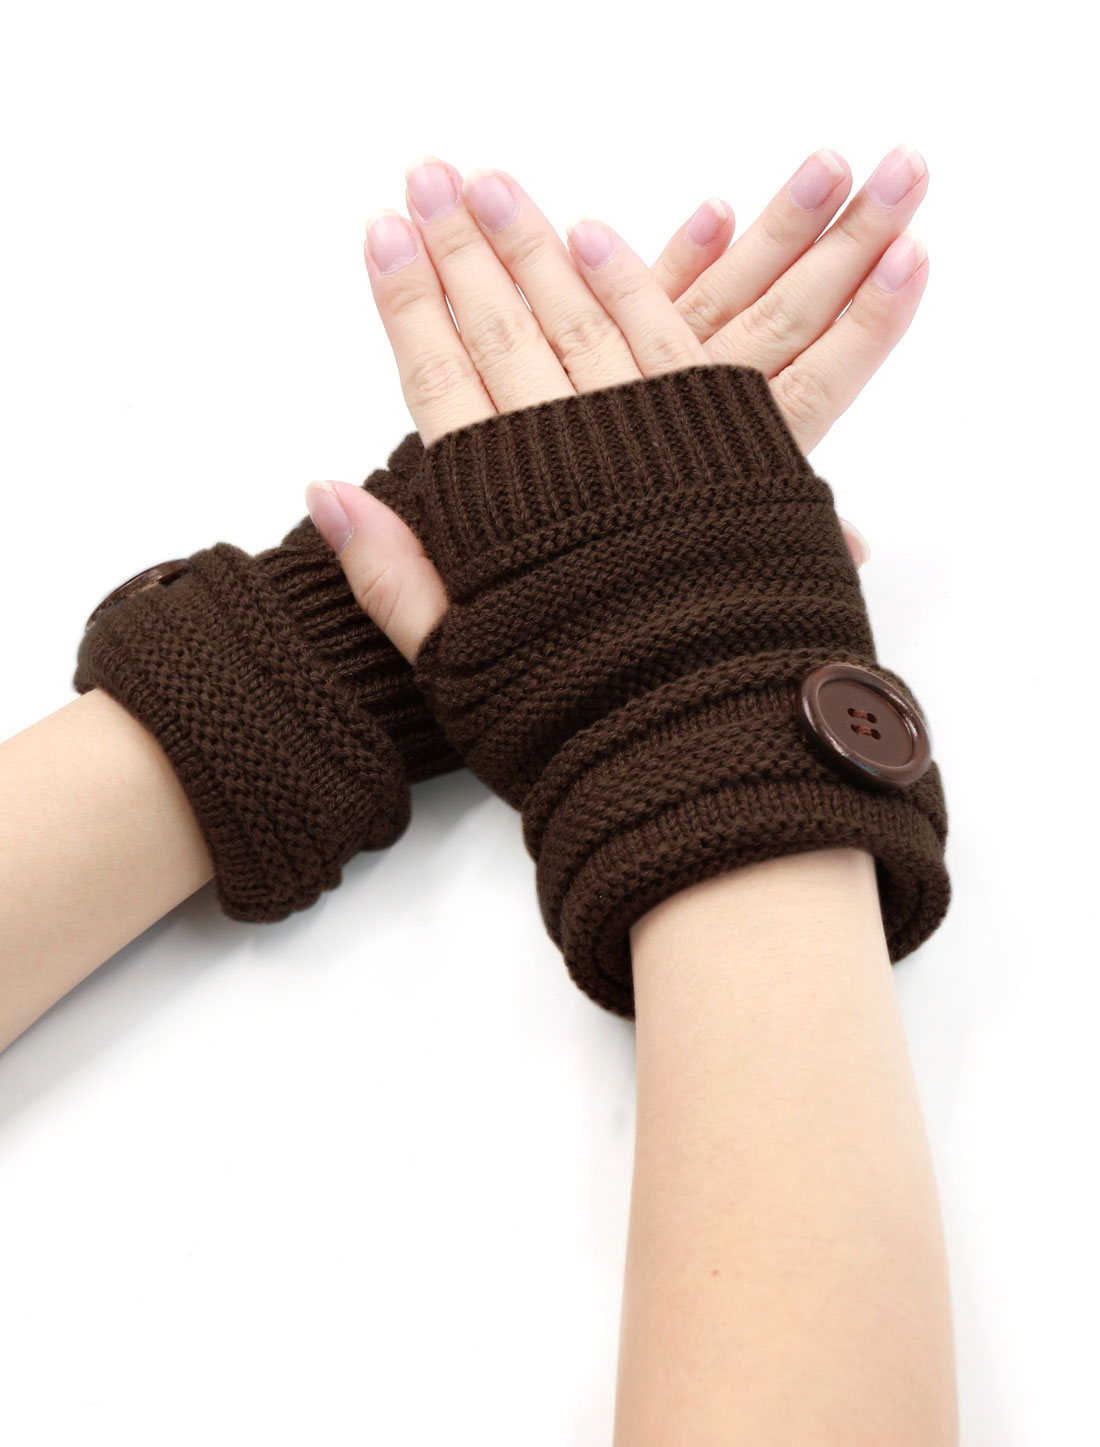 Unisex Stretchy Roll Up Thumbhole Fingerless Gloves Pair Dark Brown